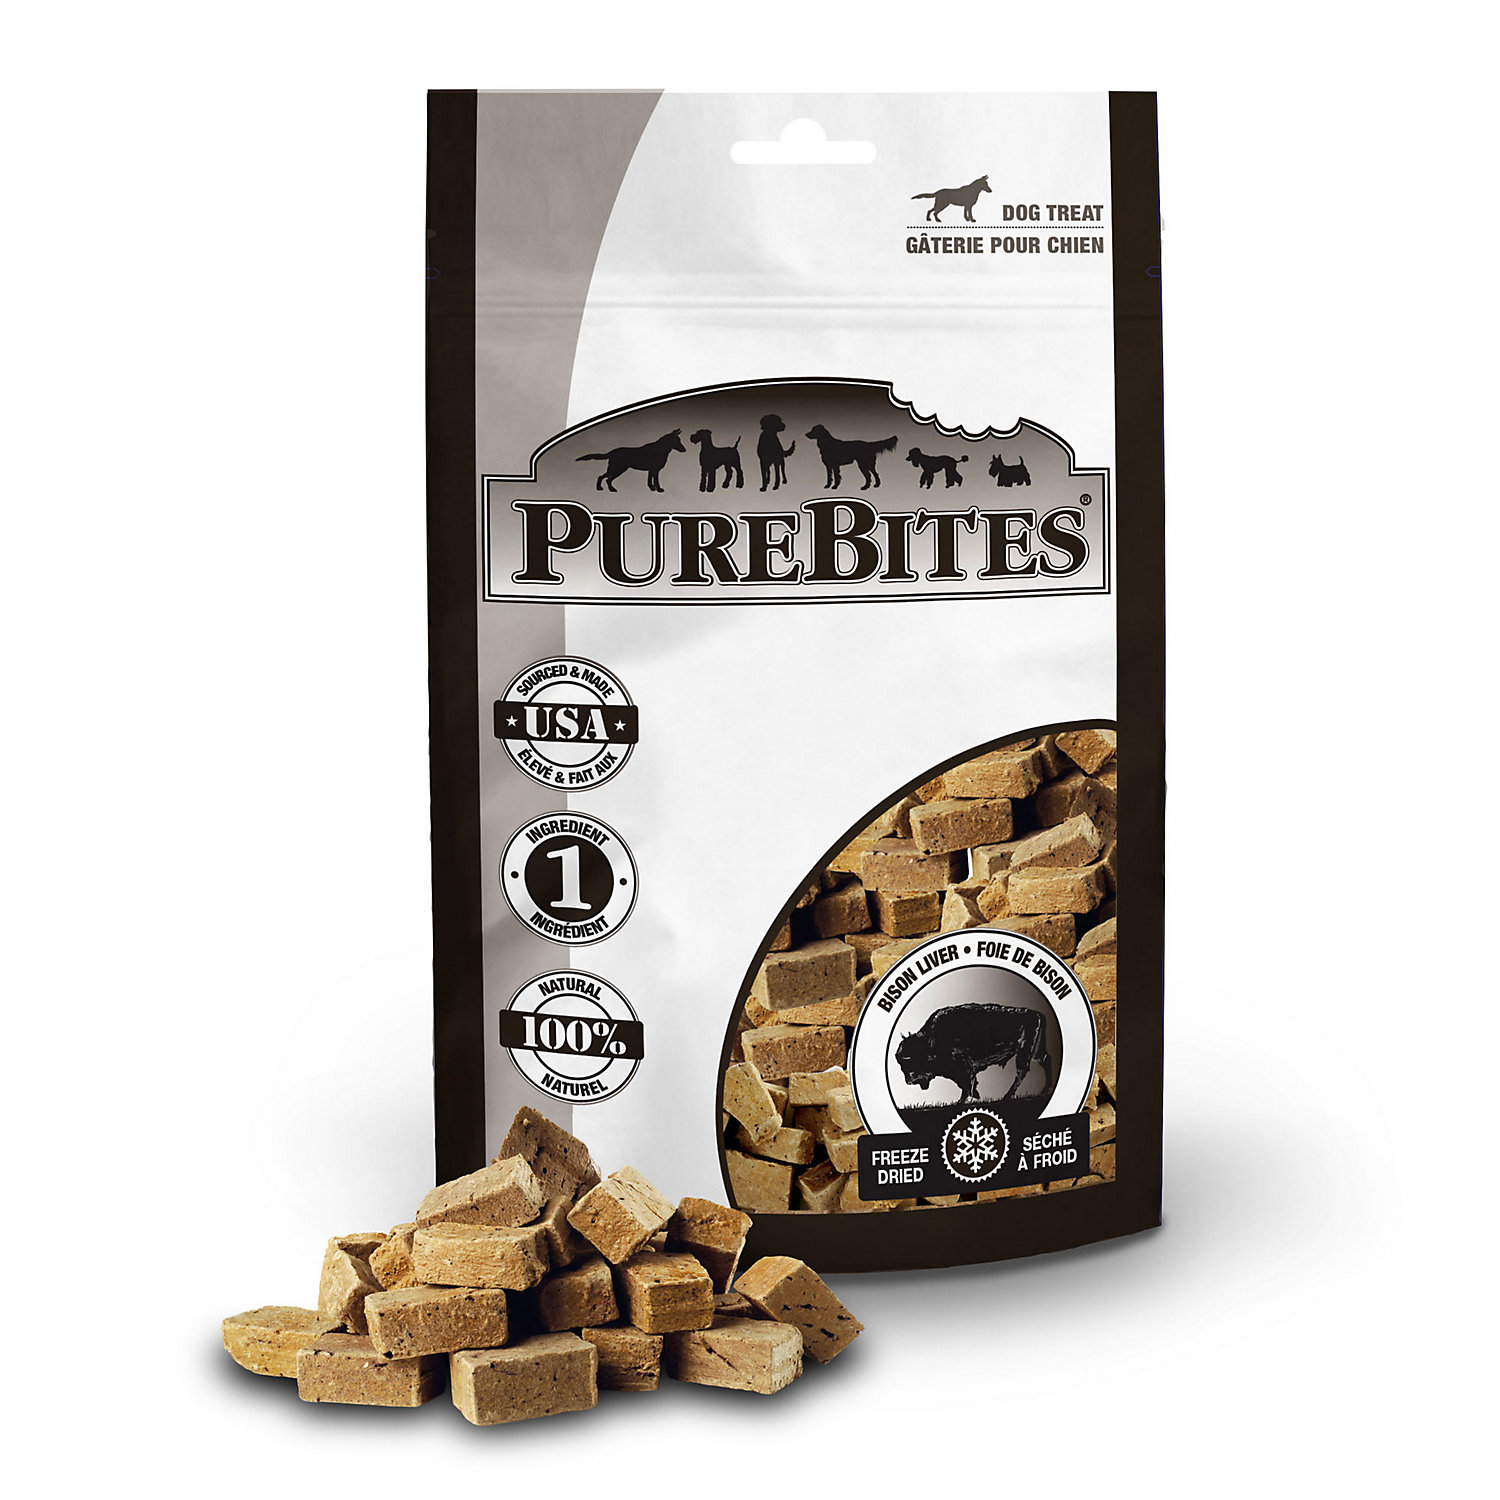 Purebites Bison Liver 2.6oz/ 74g Mid Size Dog Treats